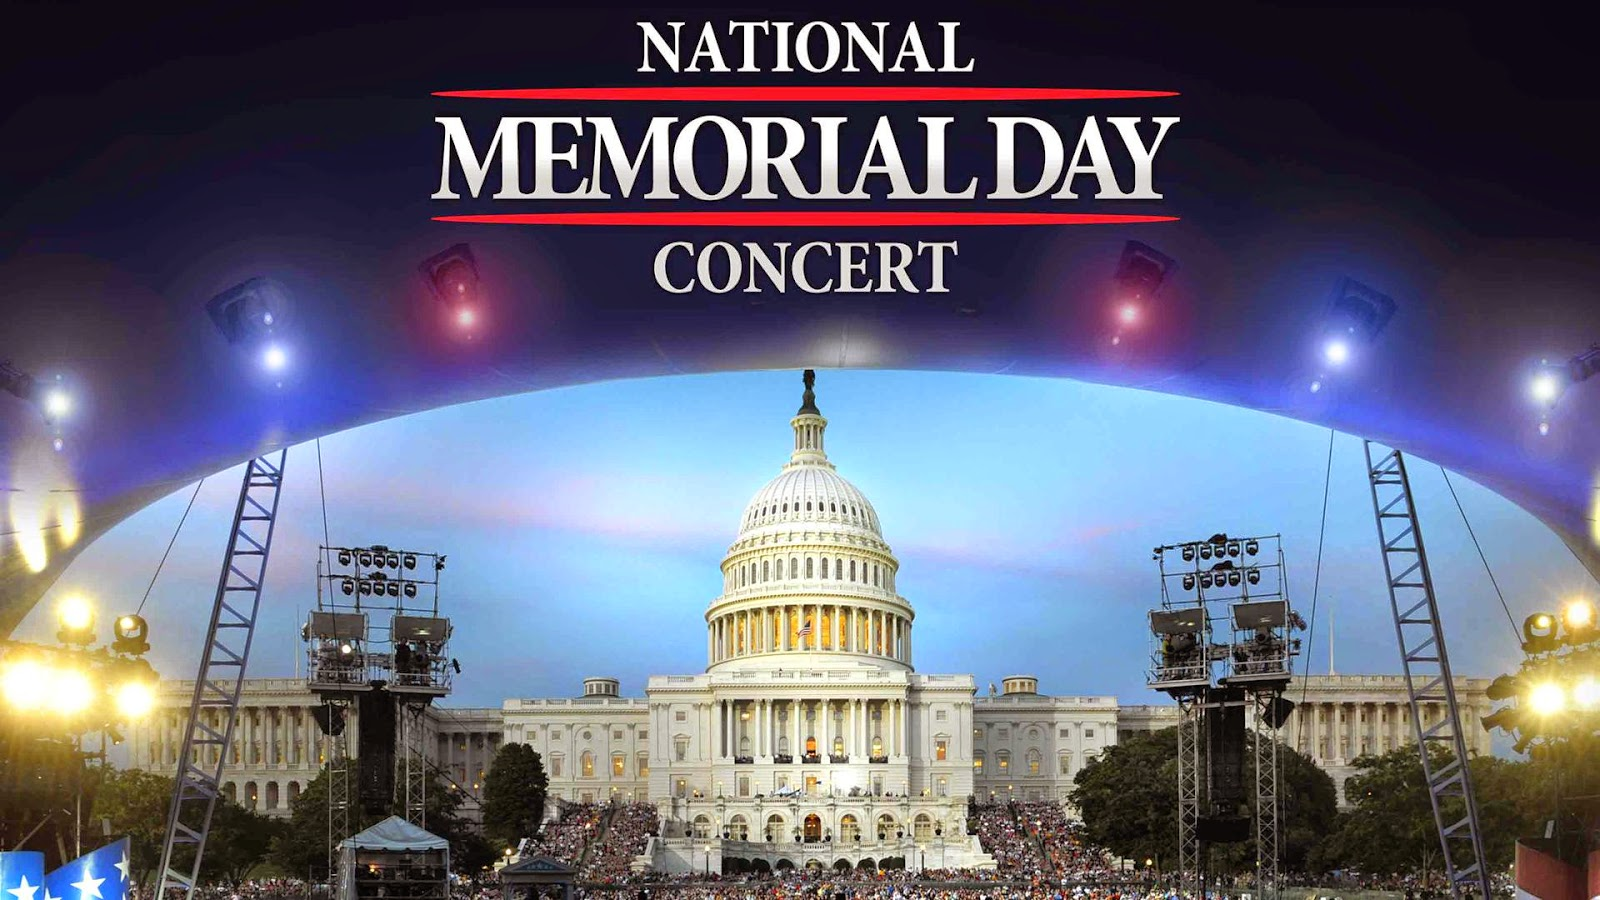 National Memorial Day Concert Open Dress Rehersal 2015 Fusebox Fuse Box The Syndicated Radio Broadcast And Had Pleasure To Spend A Part Of This Years Weekend On Grounds